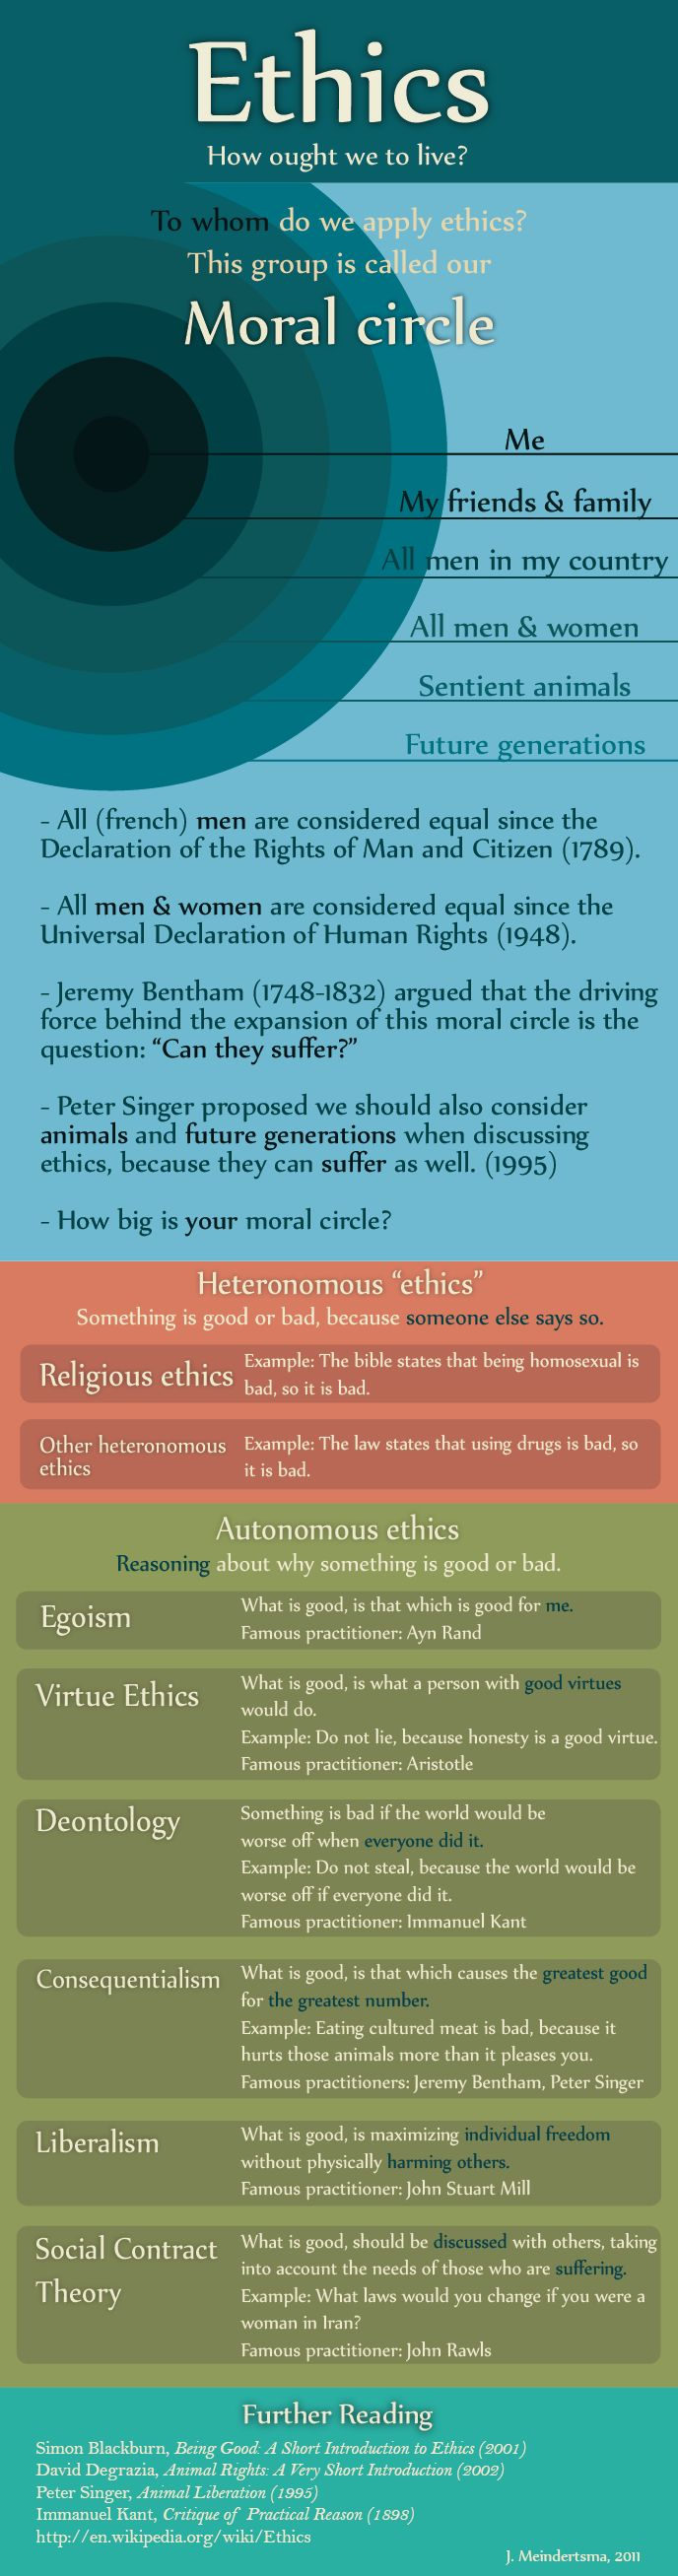 Ethics infographic. I've been playing with the idea of working on one lately, and someone already took a good first step. (Meindertsma, 2011)